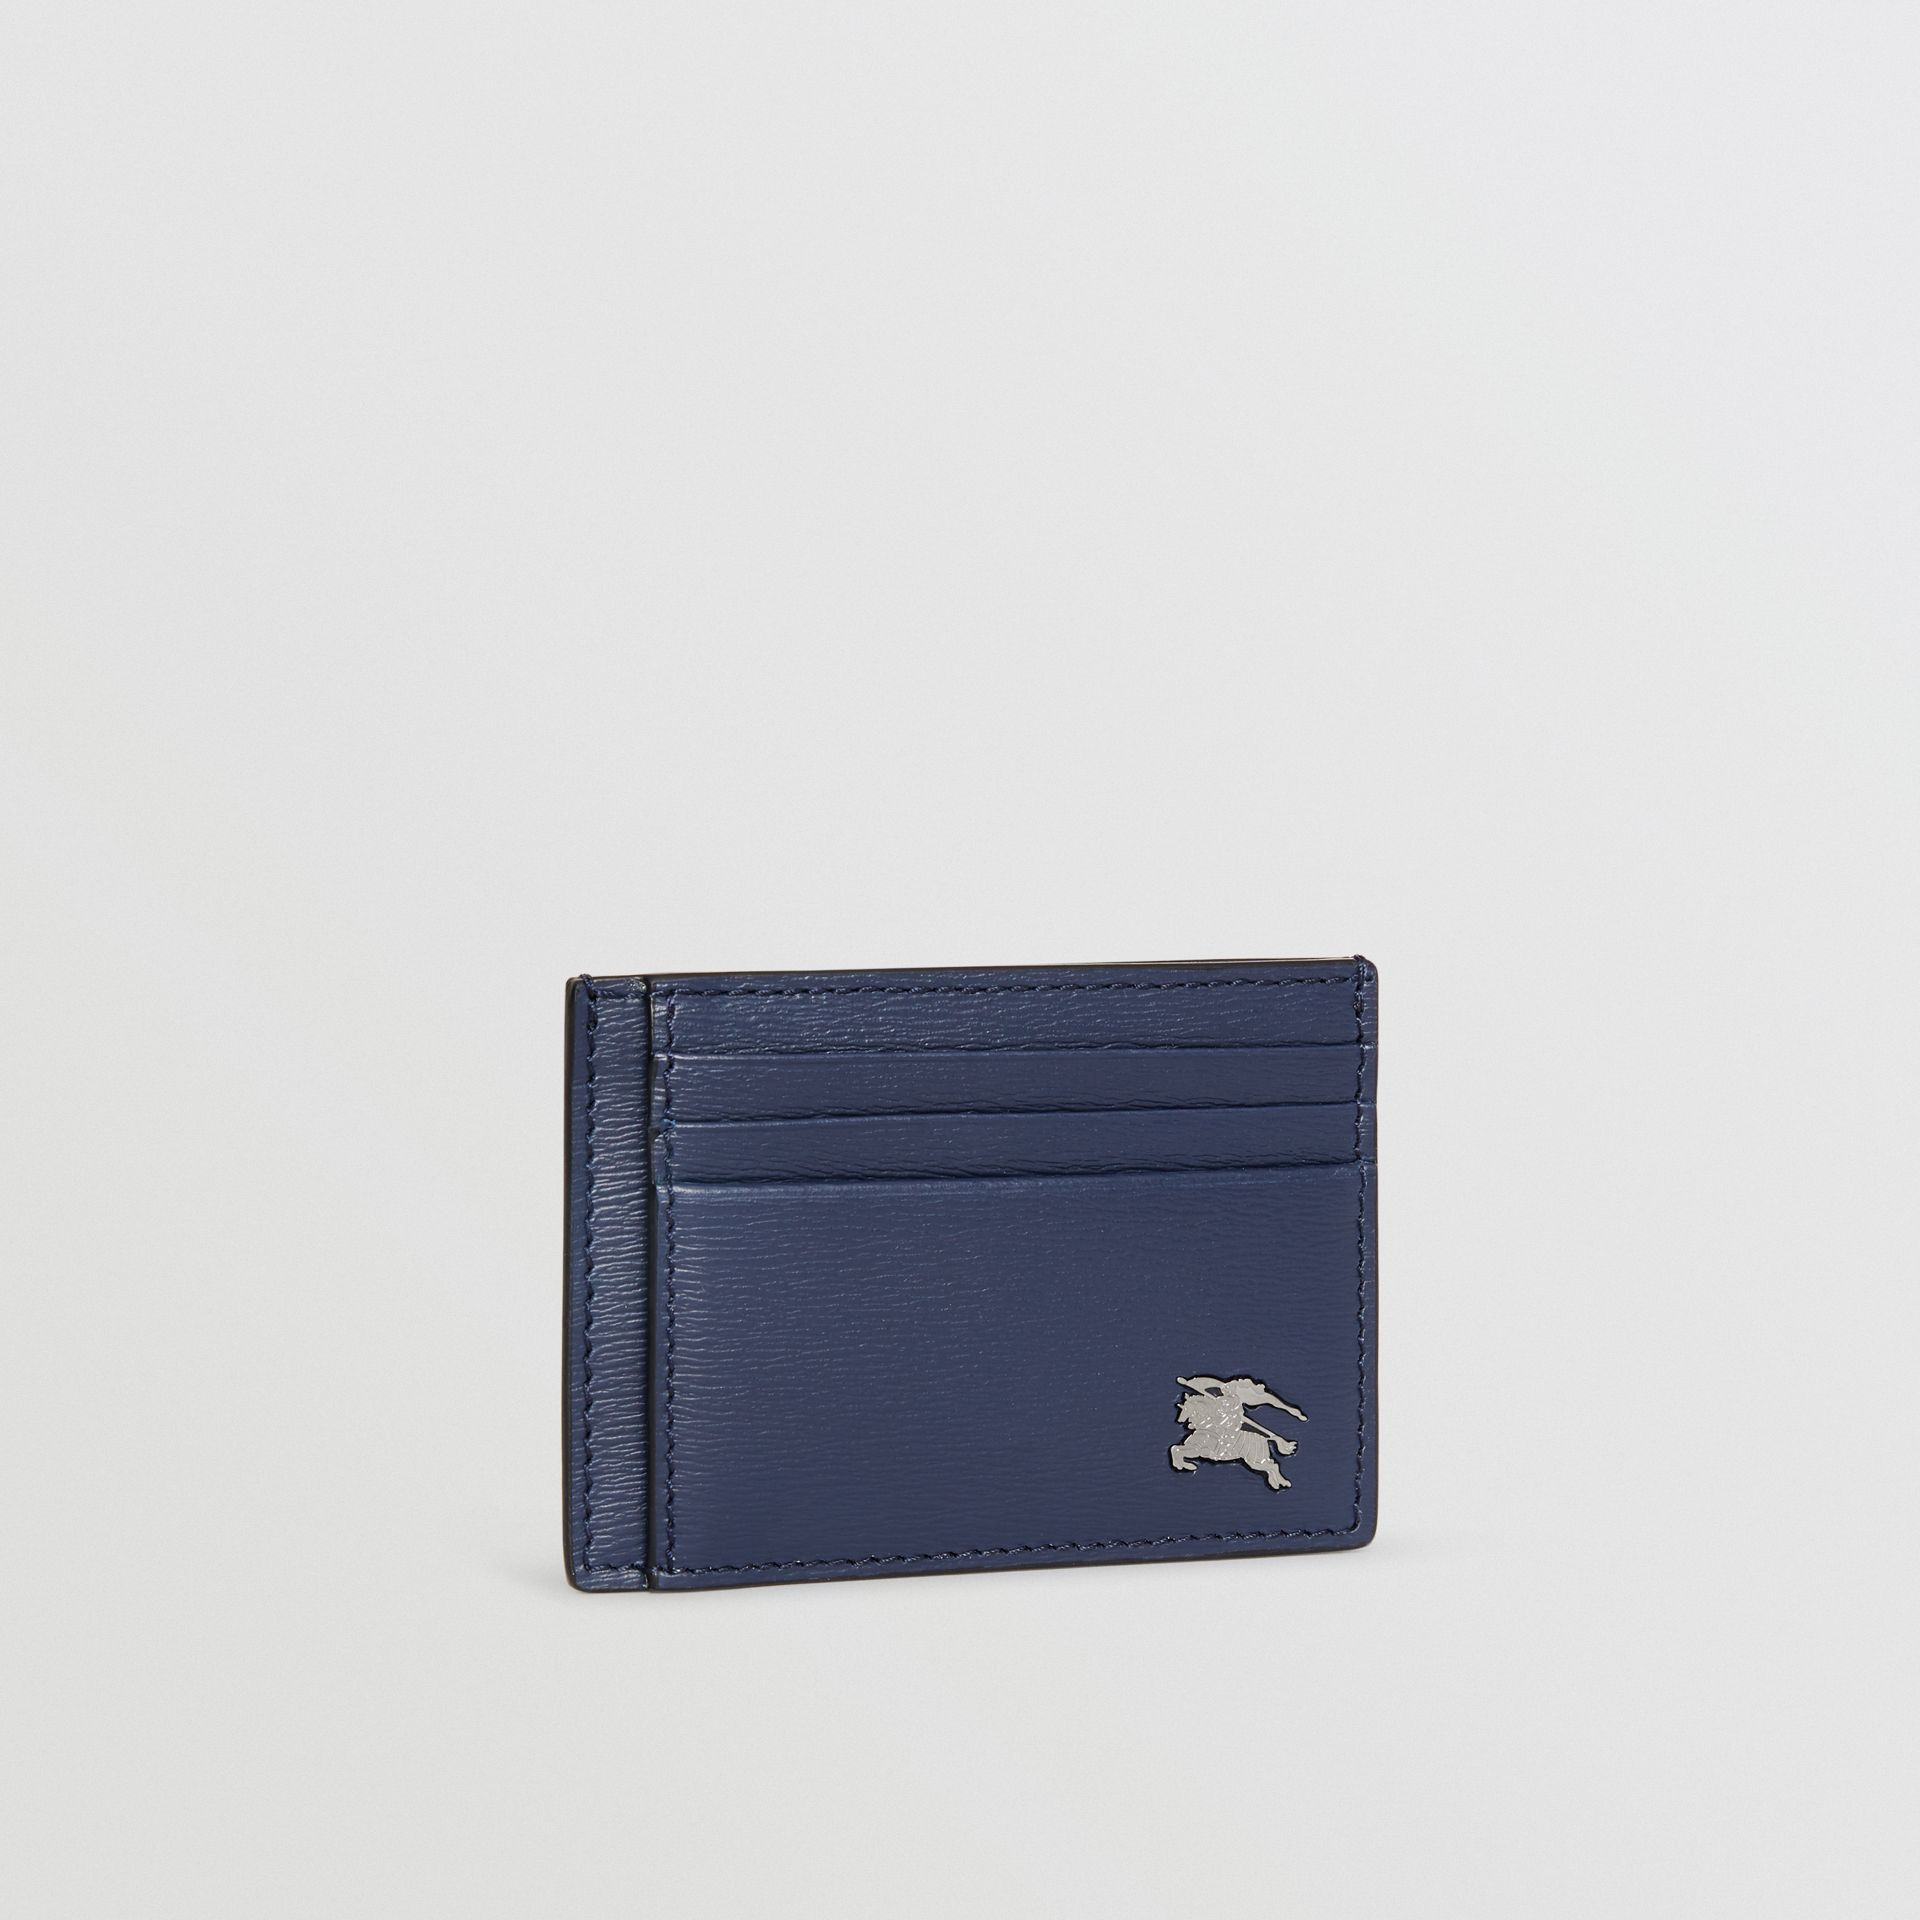 London Leather Money Clip Card Case in Navy - Men | Burberry - gallery image 3